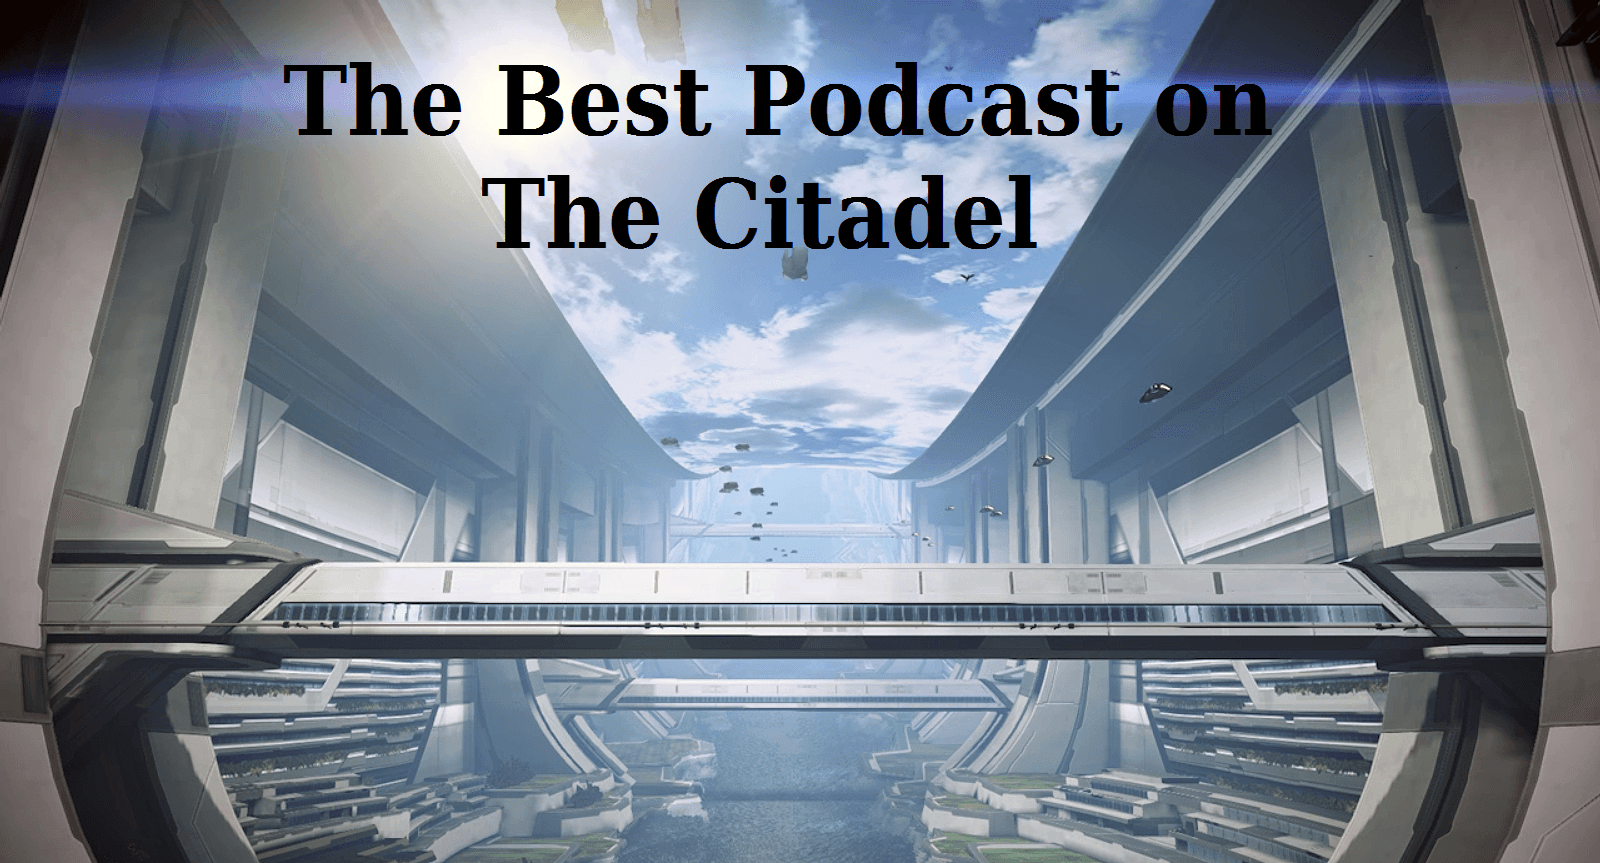 The Best Podcast on the Citadel, Episode 19